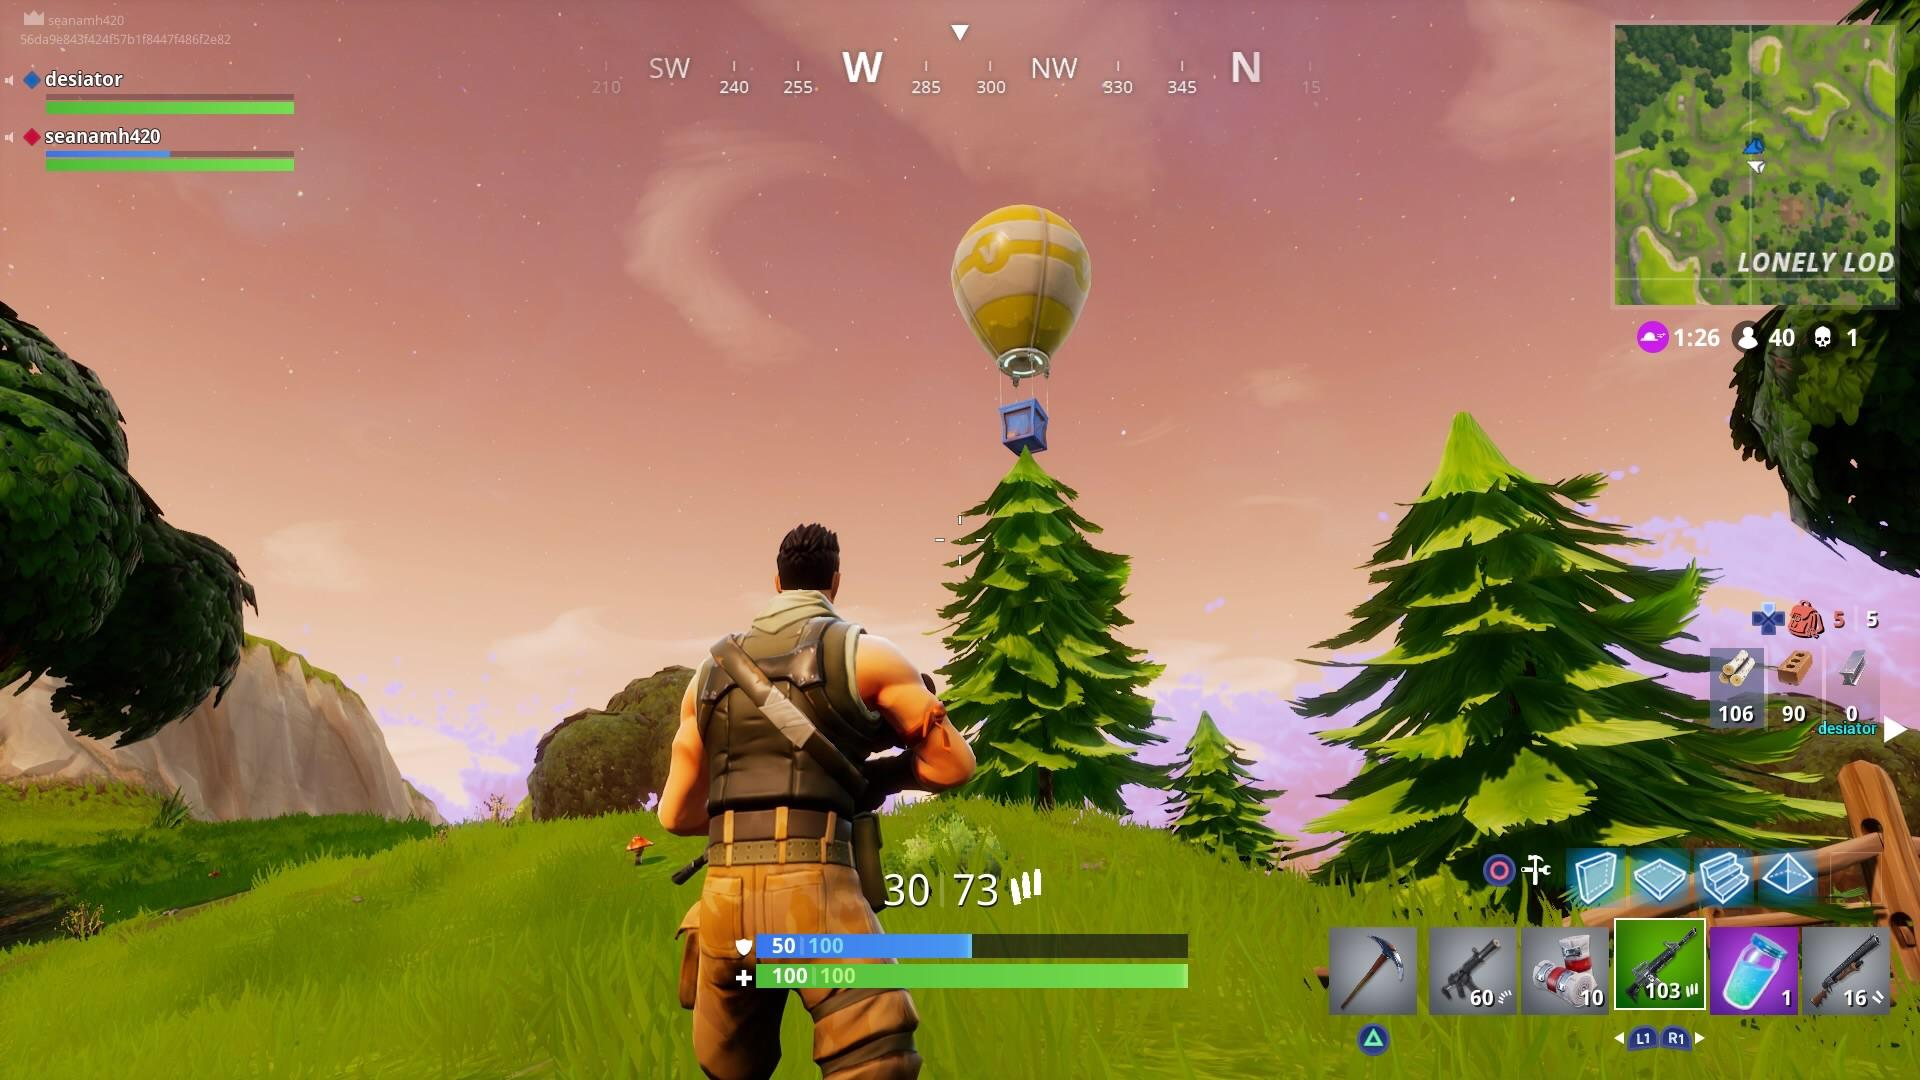 1920x1080 Looks like Christmas came early in fortnite Battle Royale ...